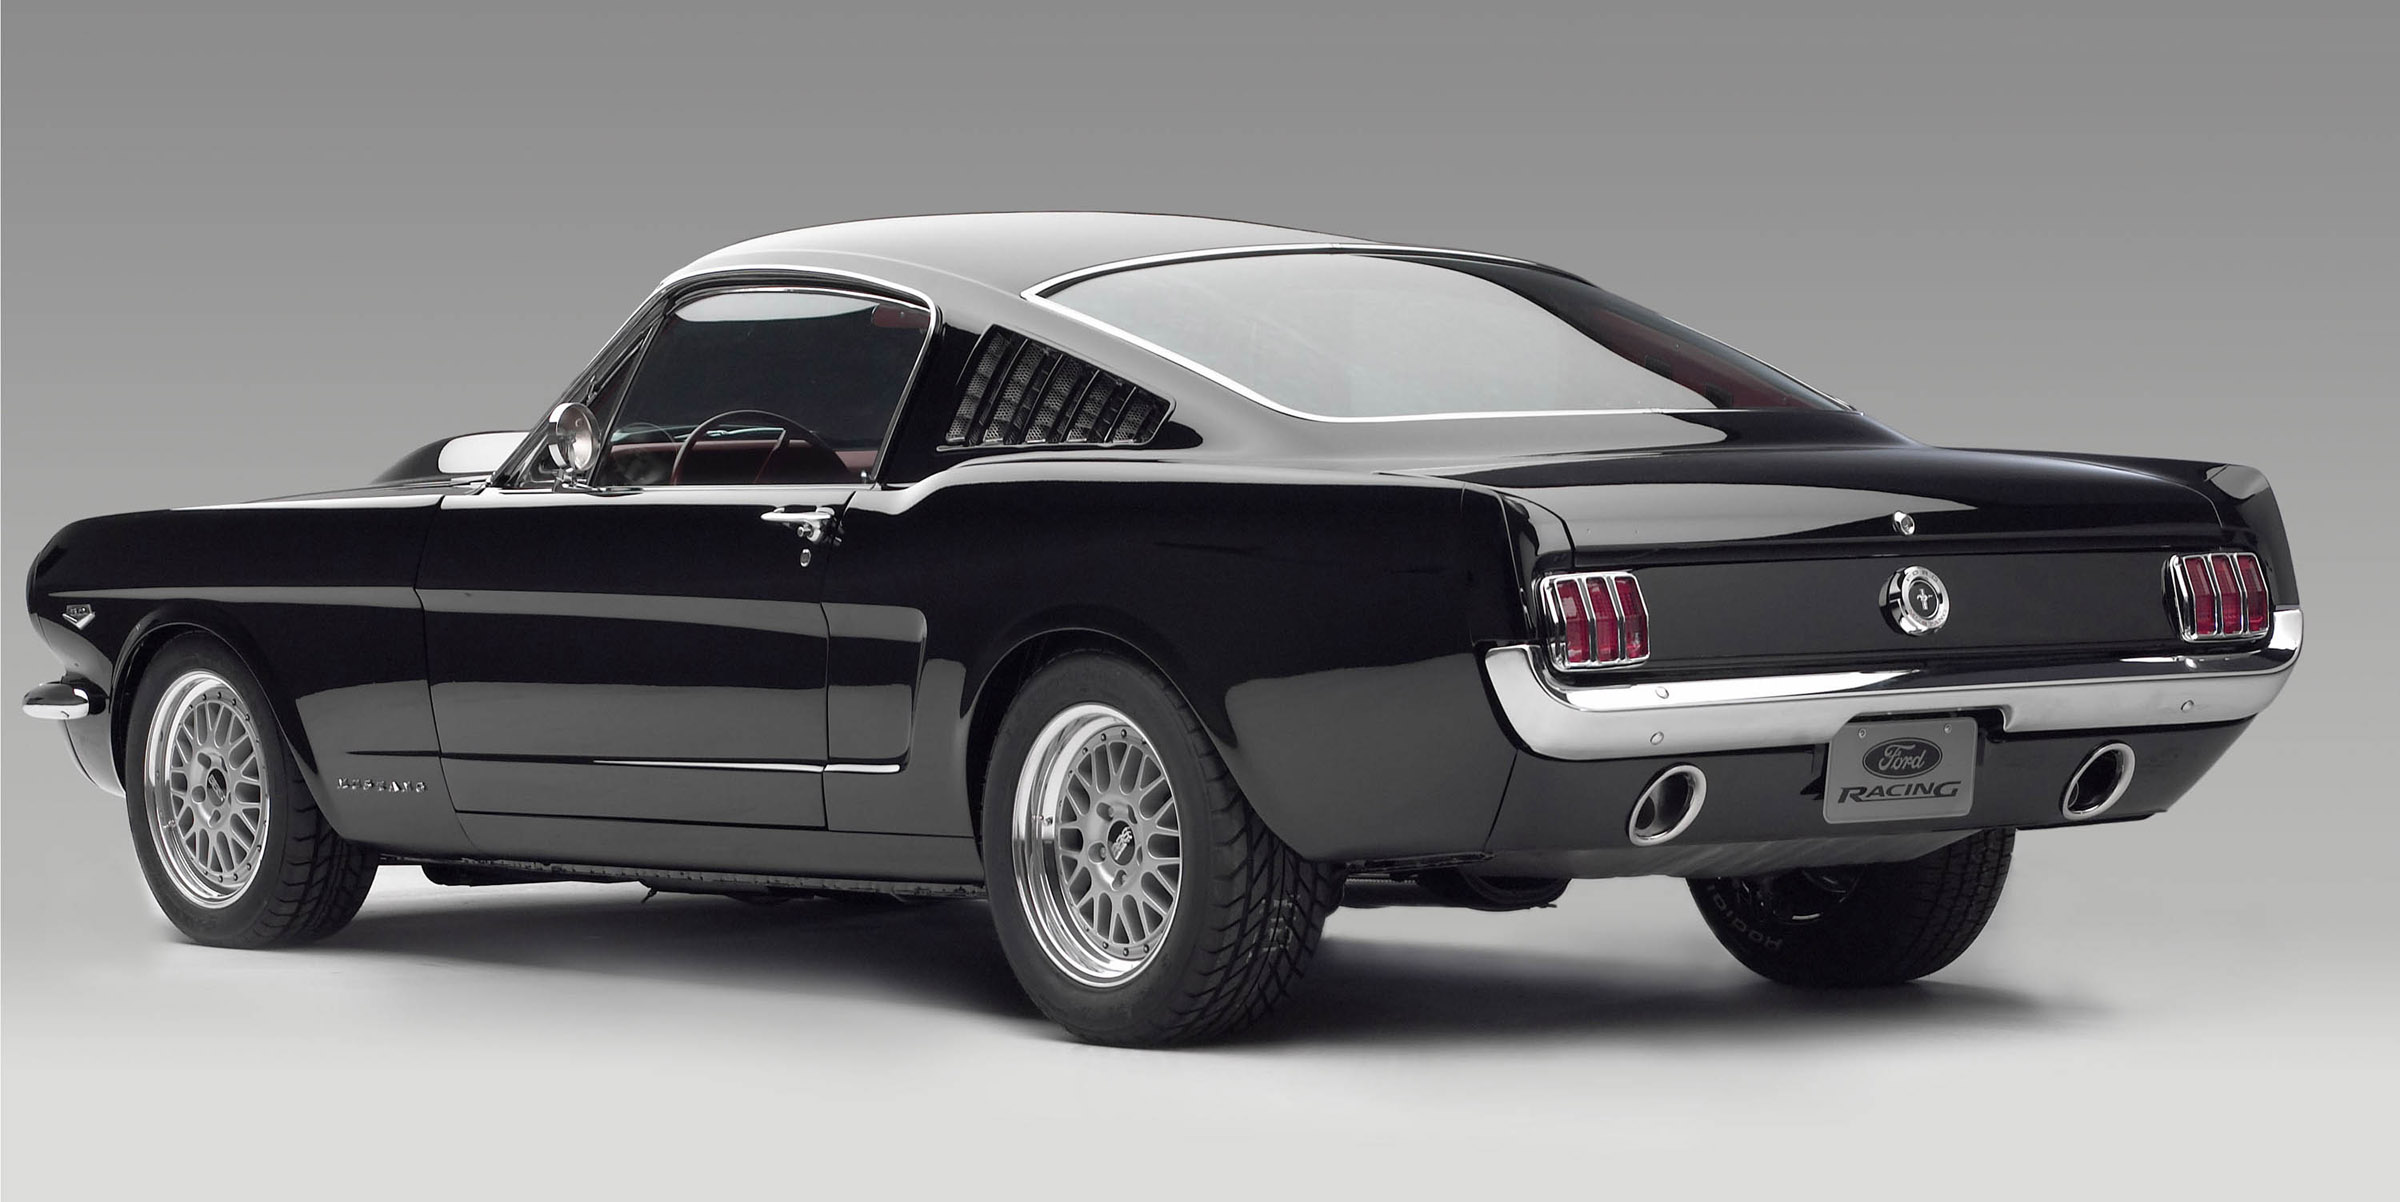 1965 mustang fastback engine - photo #39